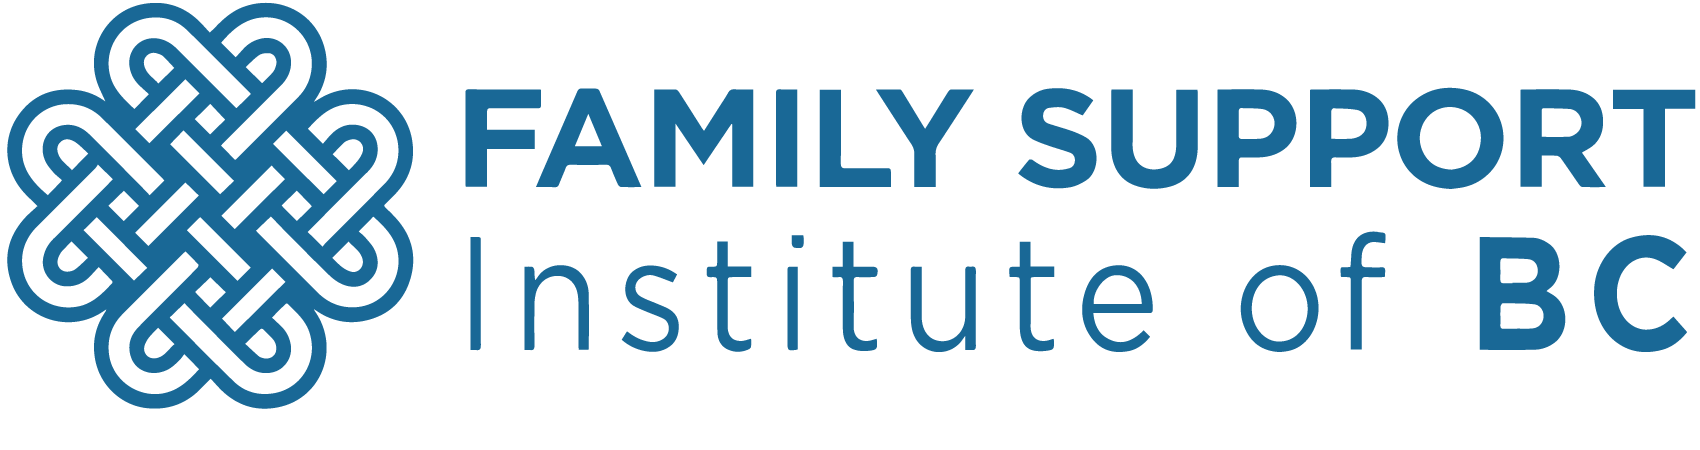 Family Support Institute of BC